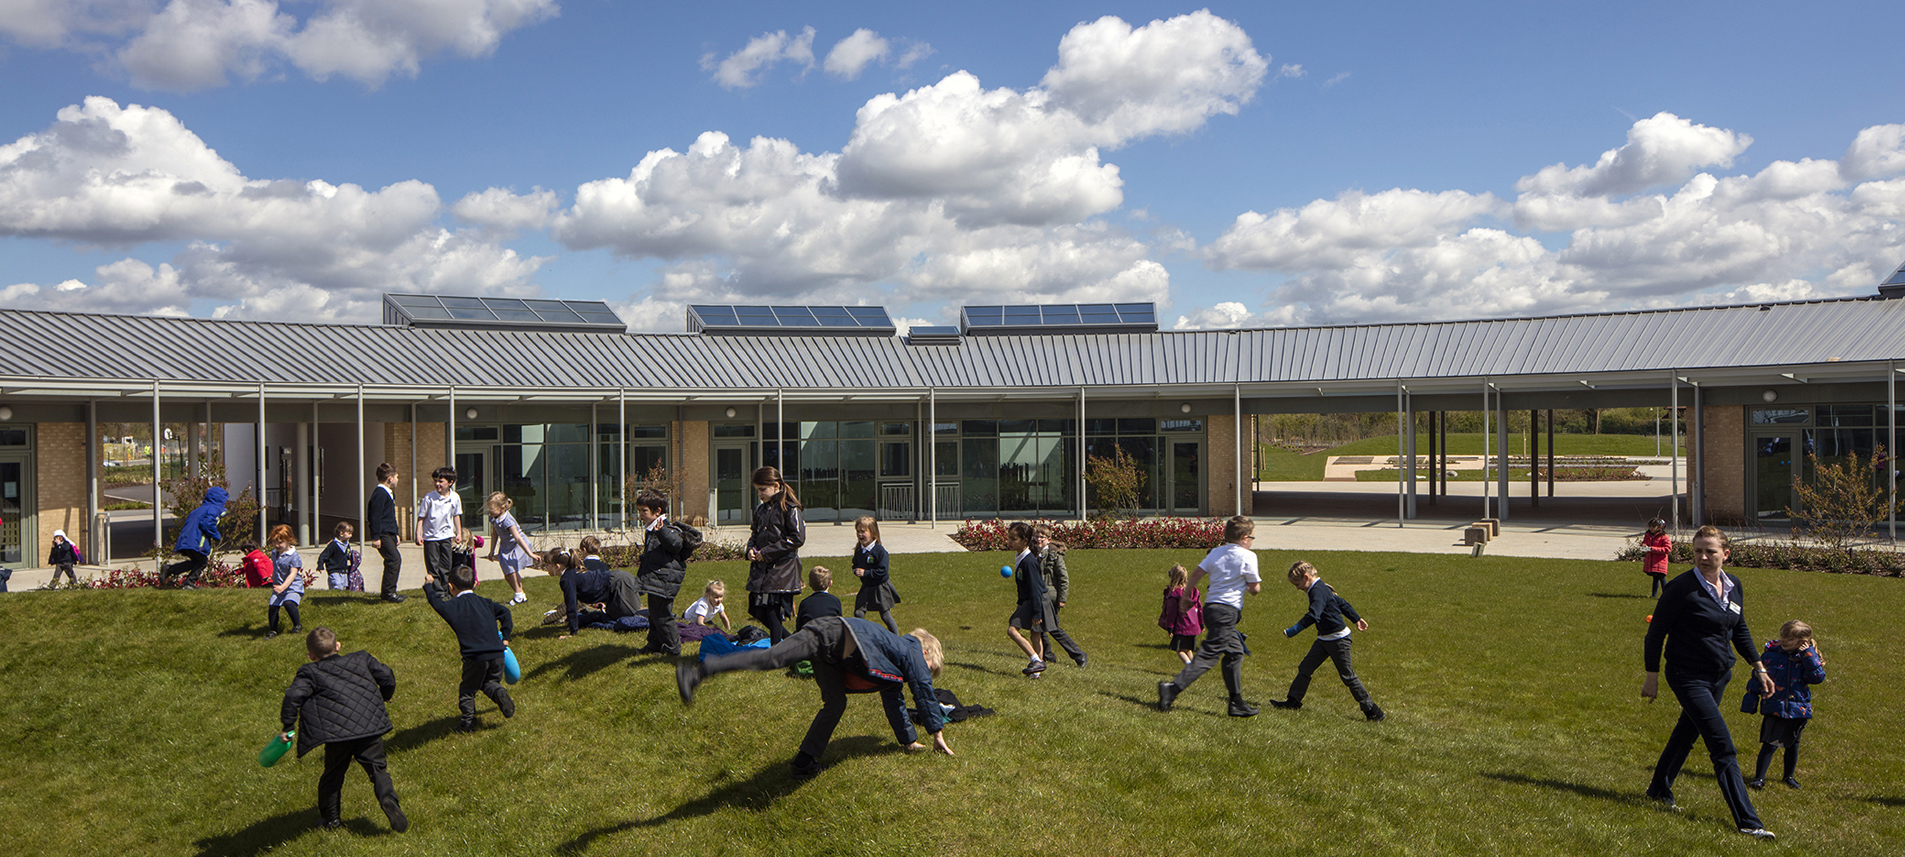 Cambridge University Primary School by Marks Barfield Architects